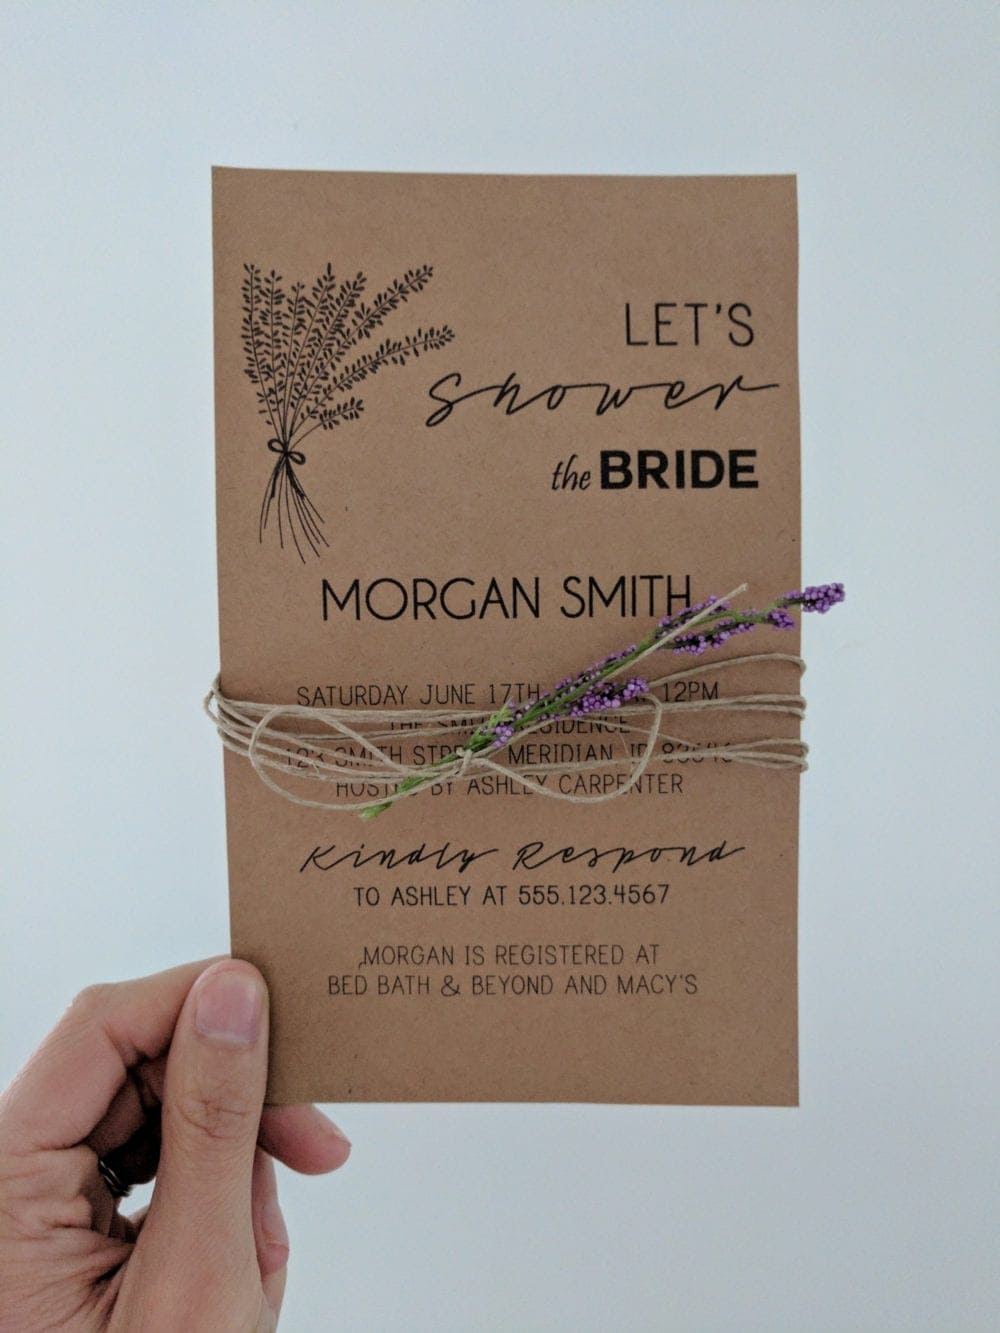 wedding invitation made using Microsoft Publisher